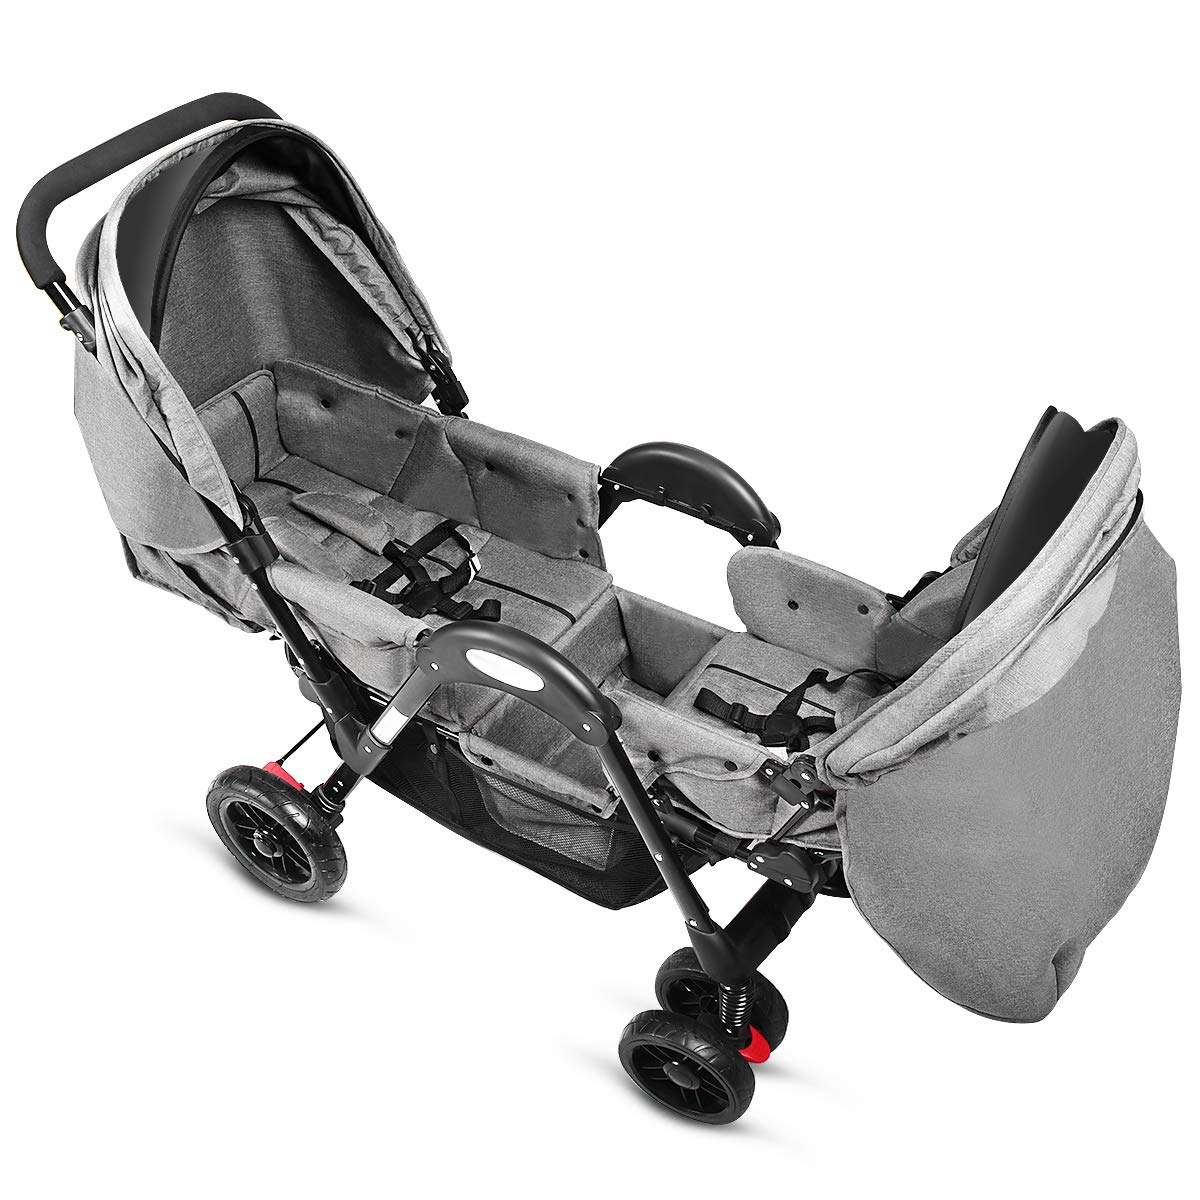 Costzon Double Stroller, Baby Face to Face Carriage with Sleep/Sit/Recline Seat, 5-Point Safety Harness, Detachable Food Tray, Large Storage Space, Gray by Costzon (Image #2)